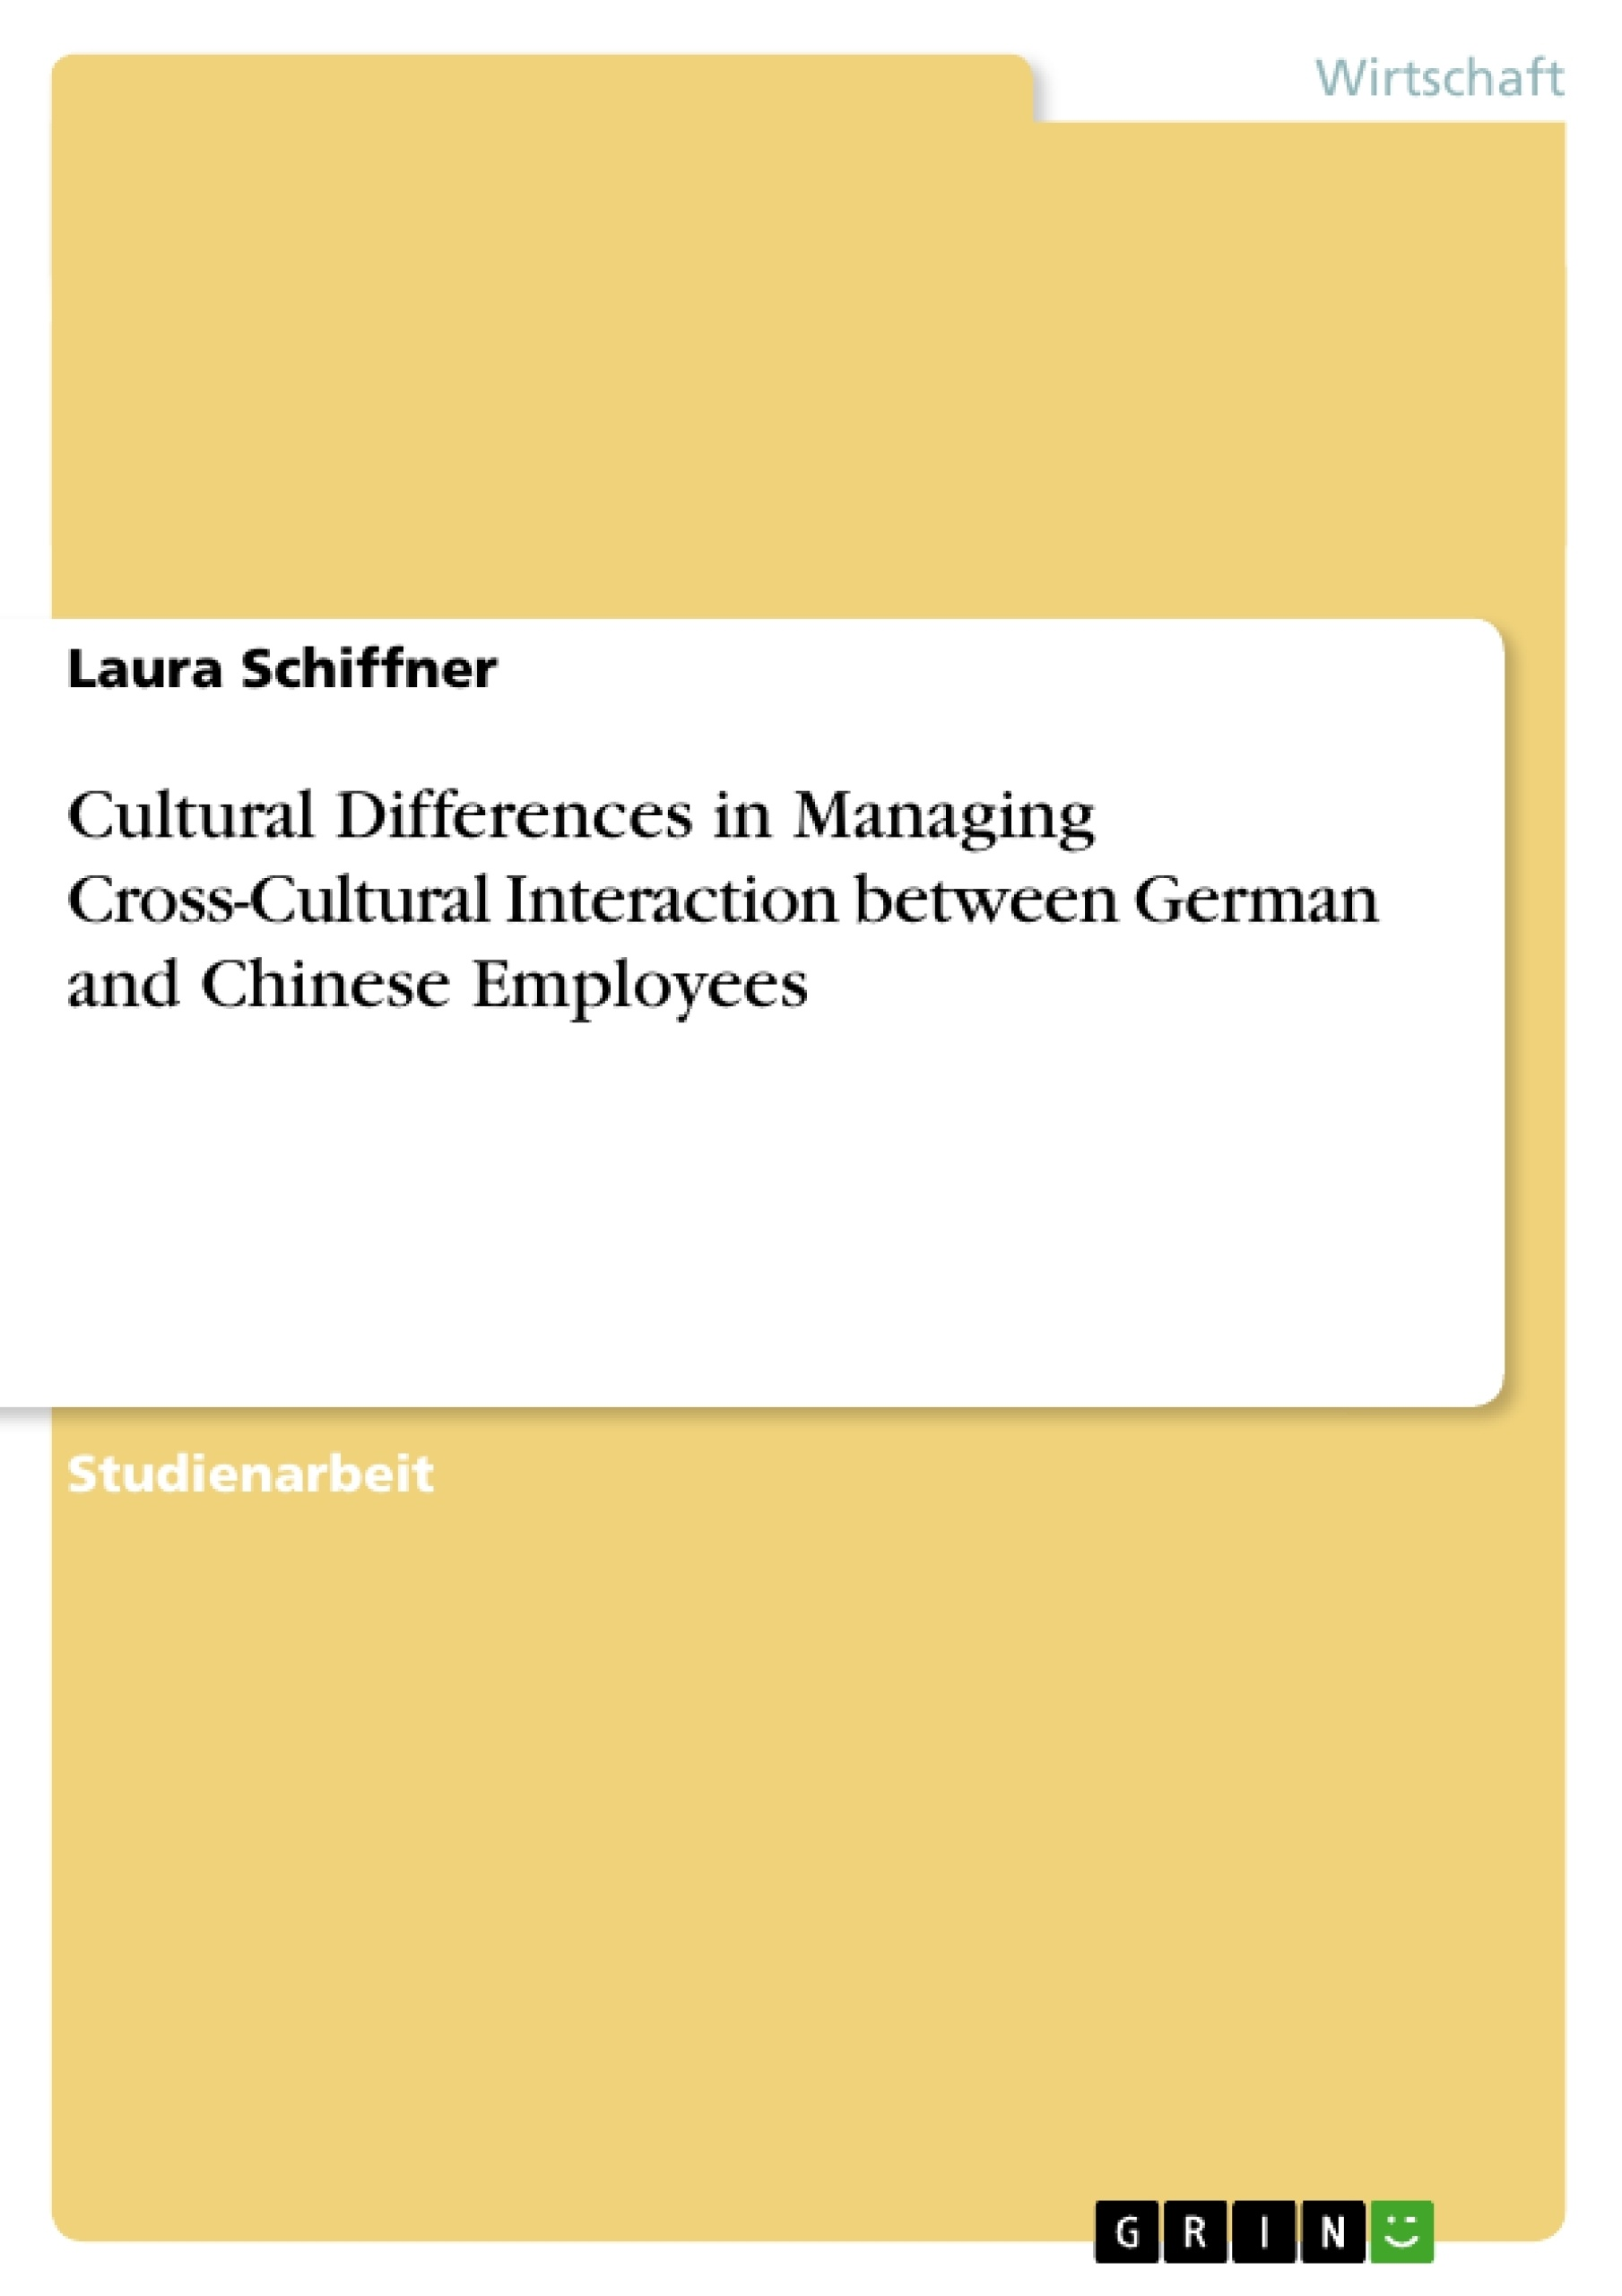 GRIN - Cultural Differences in Managing Cross-Cultural Interaction between  German and Chinese Employees